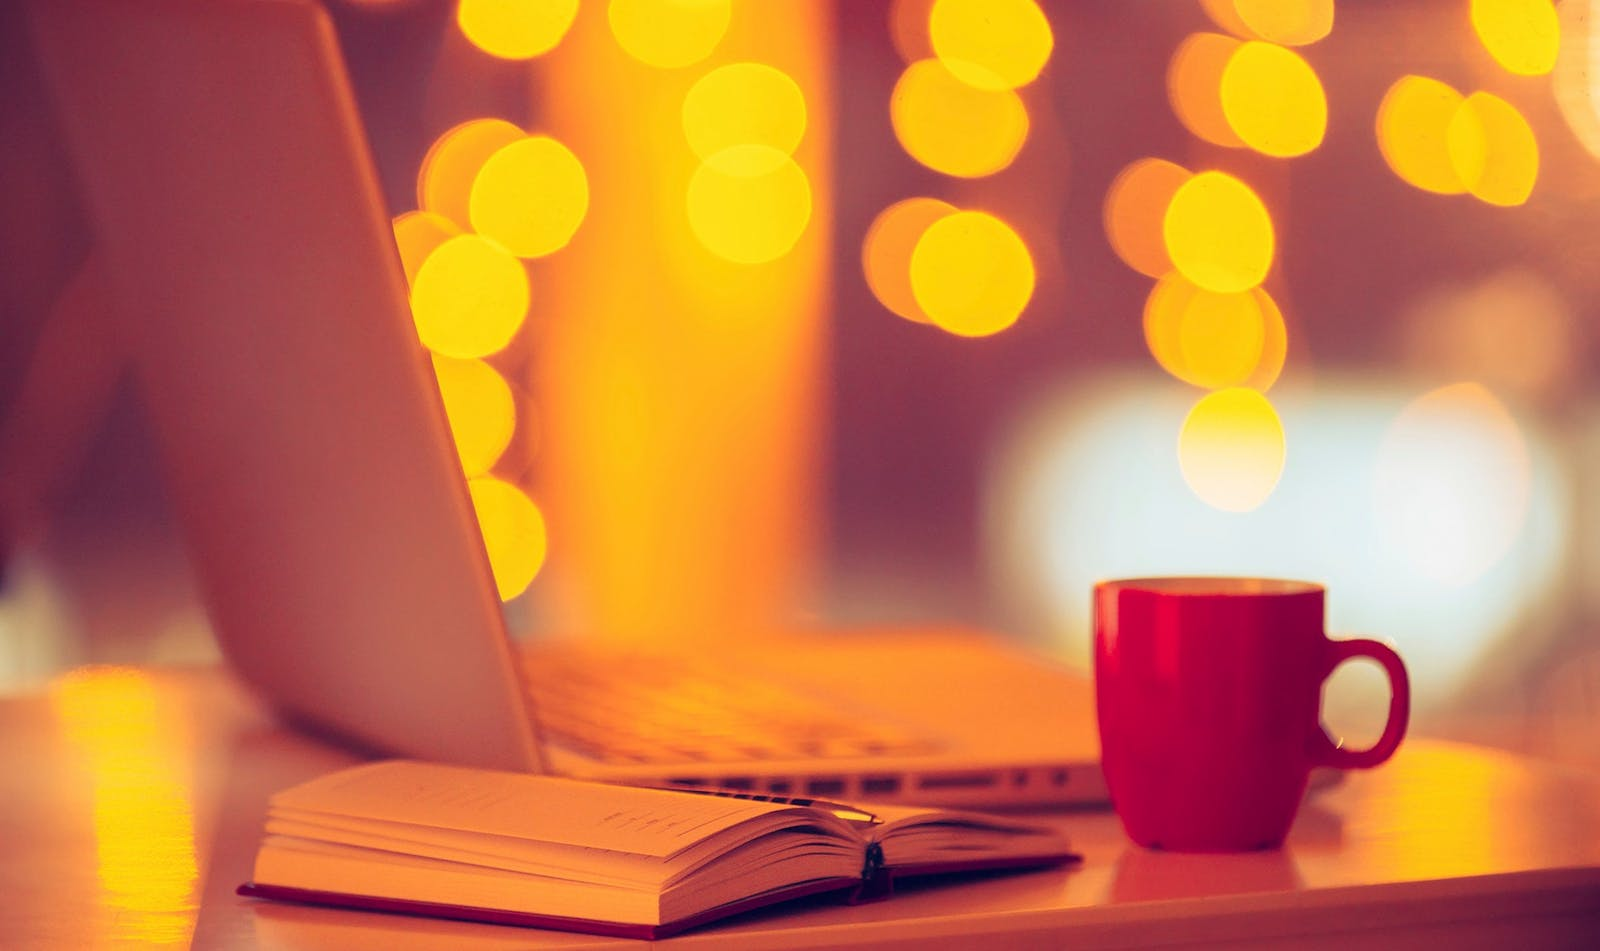 Laptop & cup with twinkle lights in background